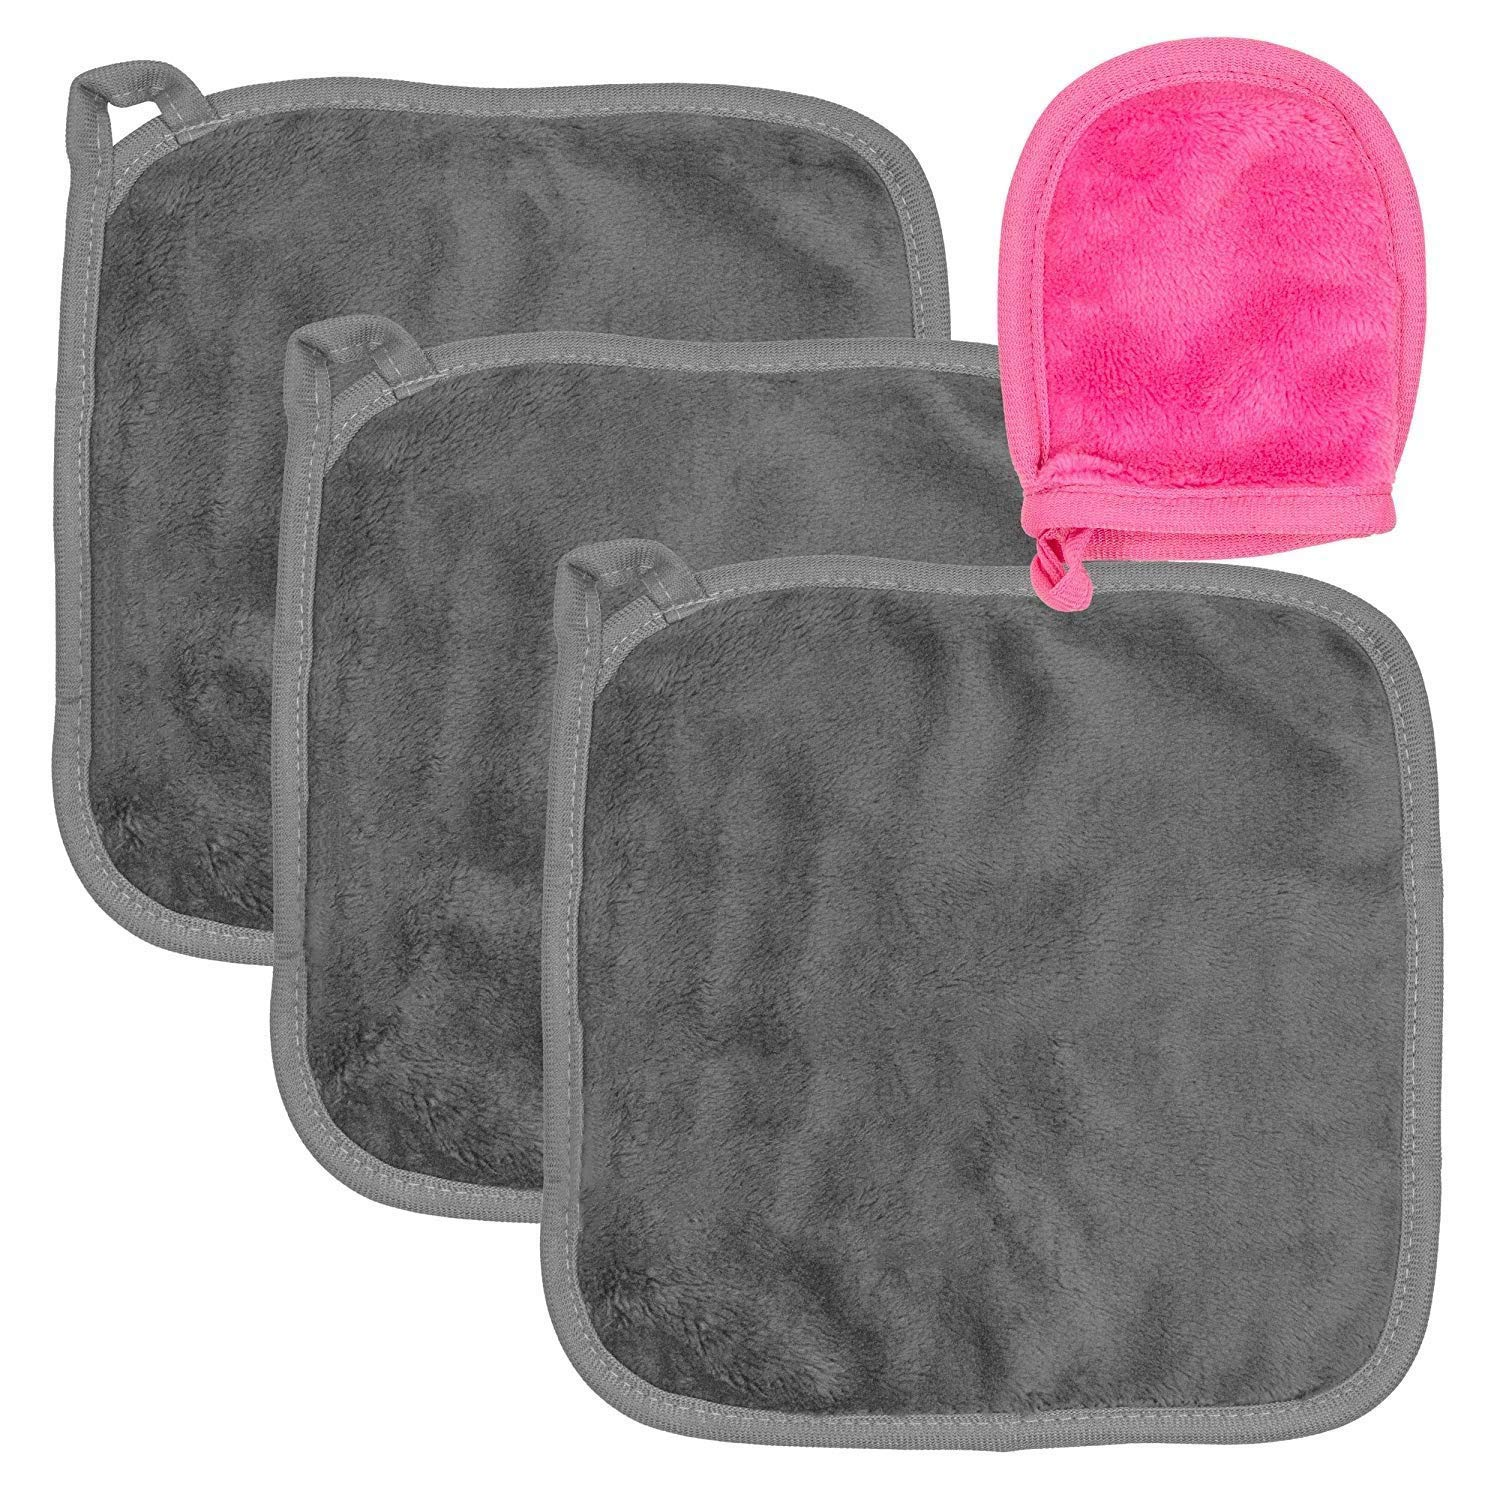 MICHIKO Makeup Remover Cloth 3 Pack,Reusable Microfiber Cleansing Towel,Suitable for All Skin Types,Includes Additional Mini Cleaning Gloves ,Continuously Soft And Comfortable